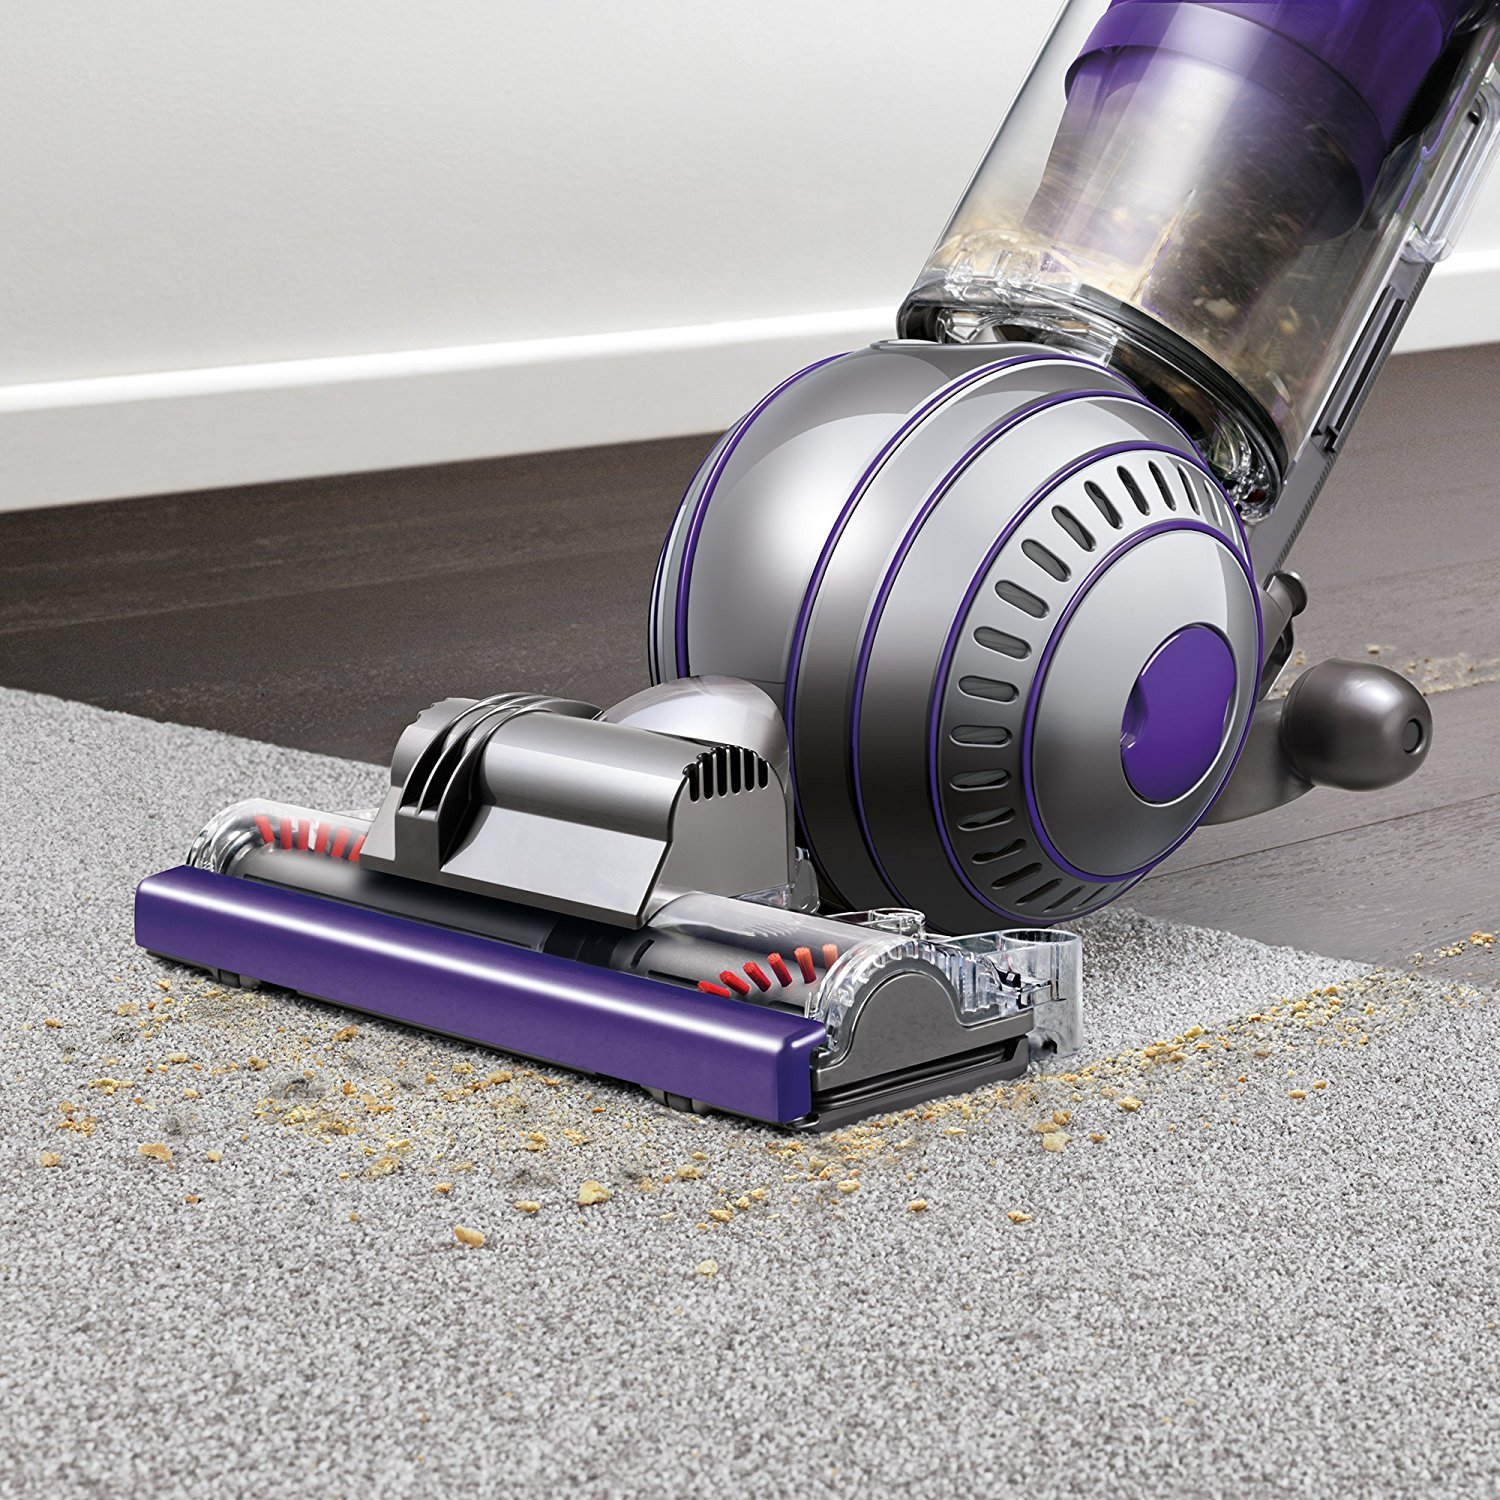 Dyson Ball Animal 2 Upright Vacuum, Iron/Purple (Certified Refurbished) by Dyson (Image #5)